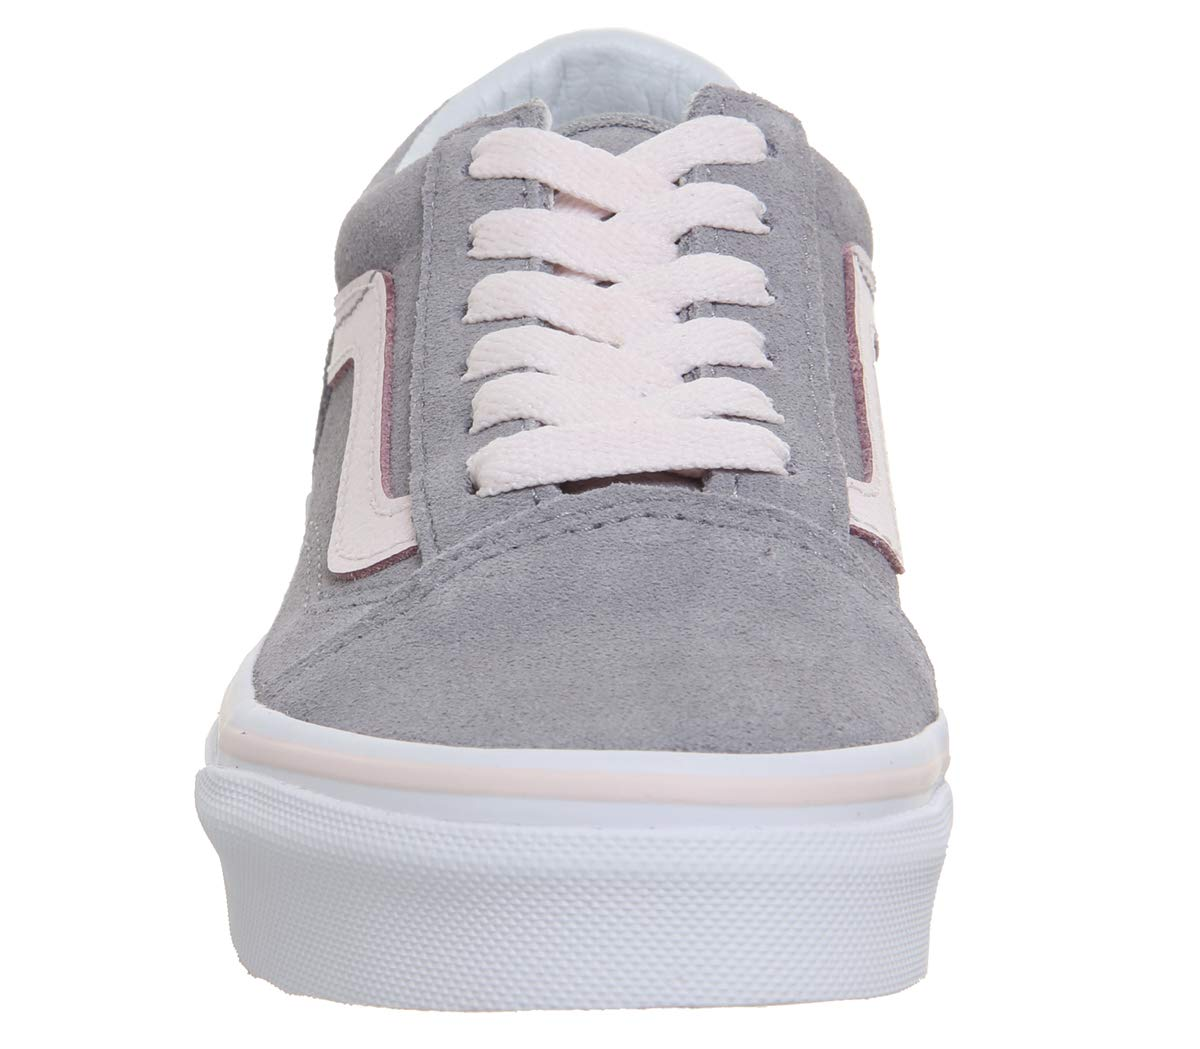 Vans Sneaker, Unisex-Kinder Old Skool Suede Sneaker, Vans Dress Bleu/True Blanc Alloy Heavenly Pink True Weiß 9899f7